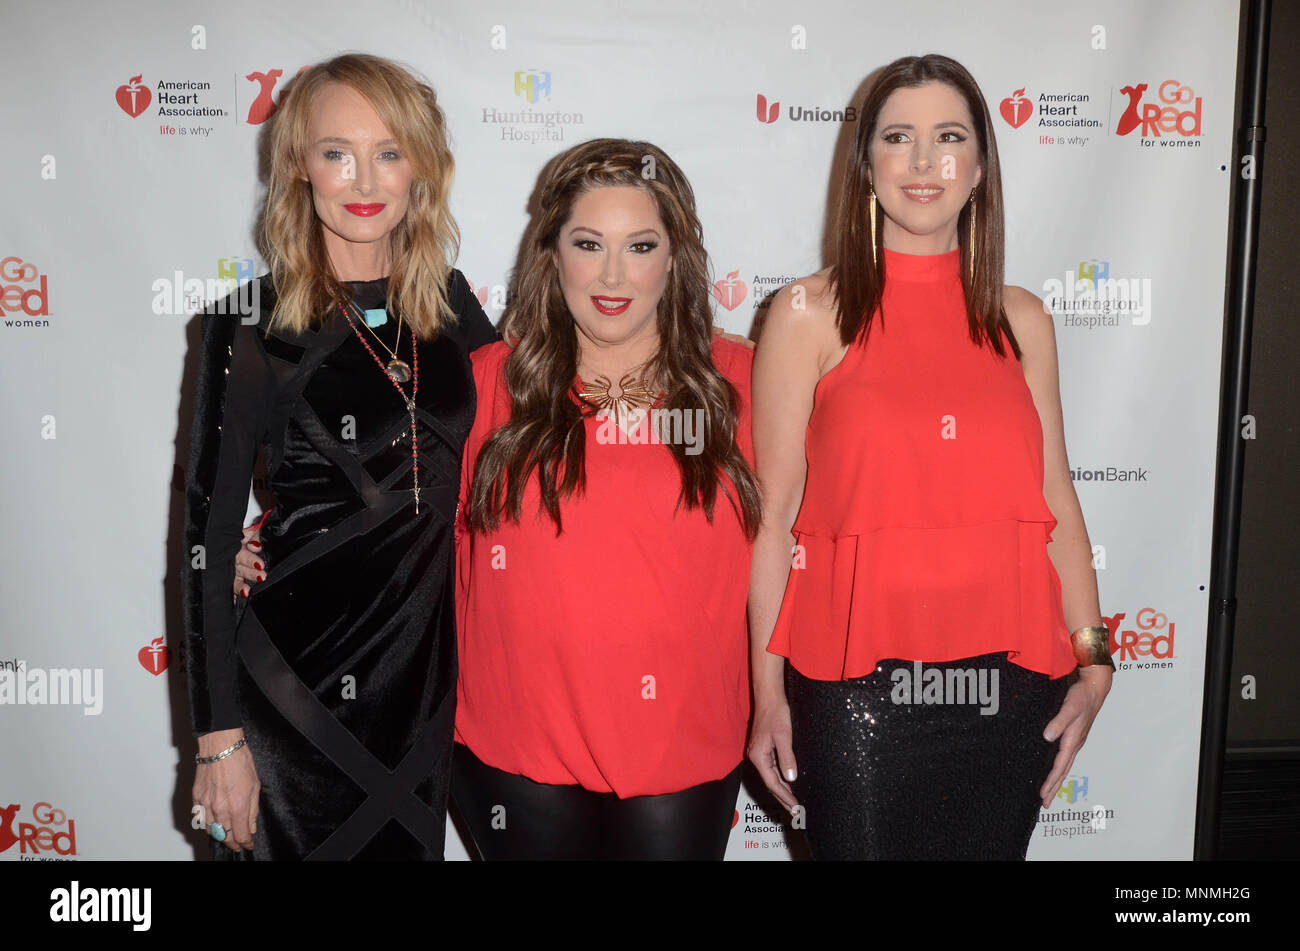 Hollywood, Ca. 17th May, 2018. Chynna Phillips, Carnie Wilson and Wendy Wilson at the American Heart Association's 3rd Annual Rock The Red Music Benefit at Avalon in Hollywood, California on May 17, 2018. Credit: David Edwards Media Punch/Alamy Live News - Stock Image